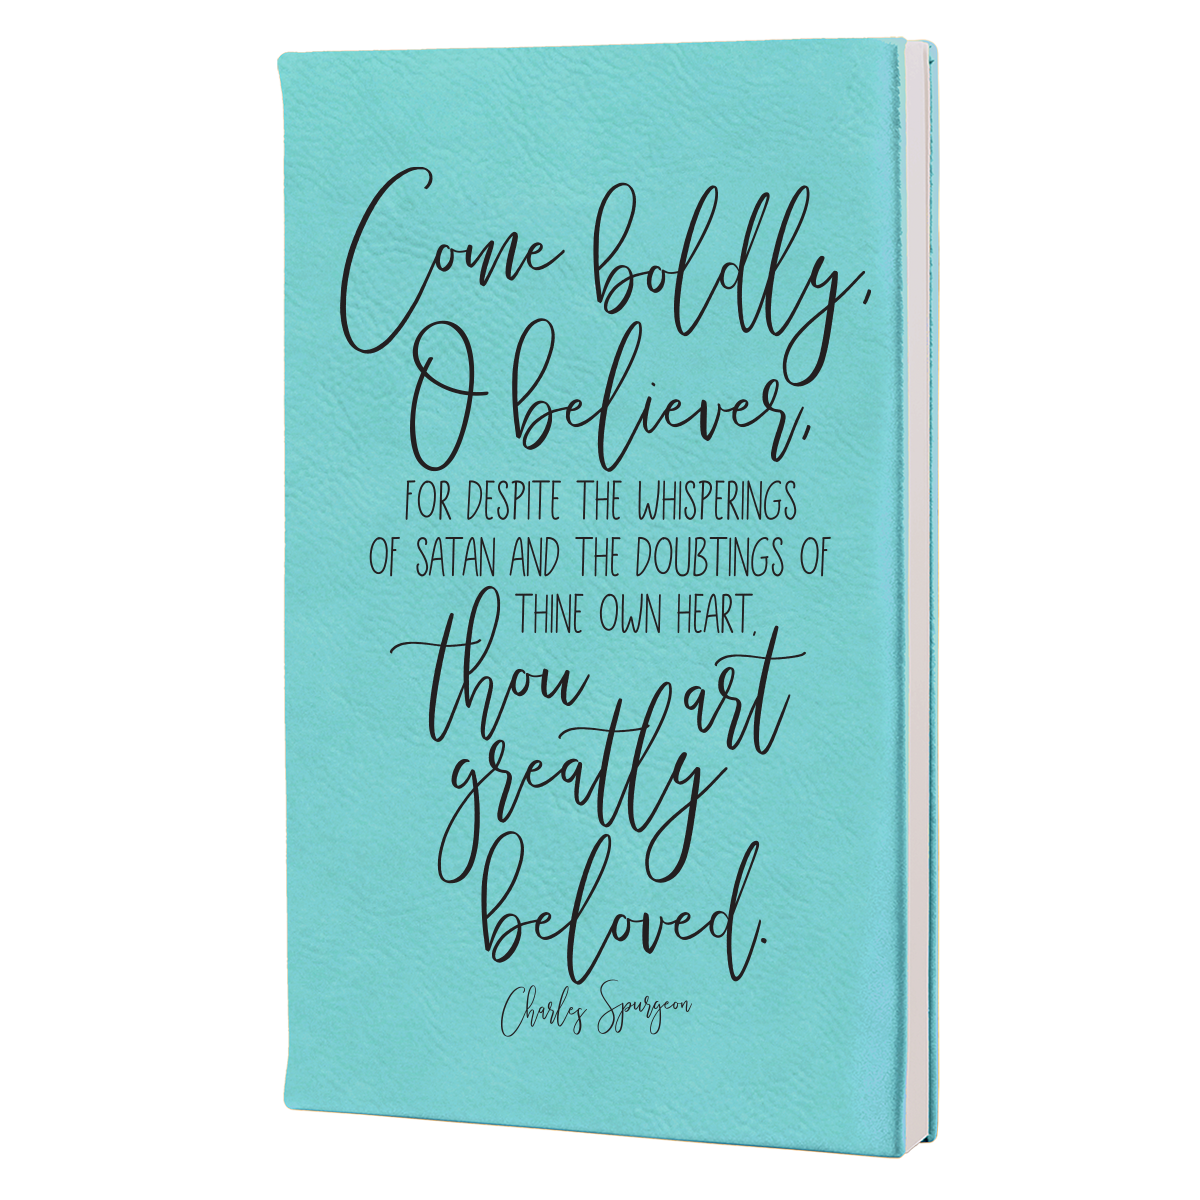 Come Bodly Leatherette Hardcover Journal